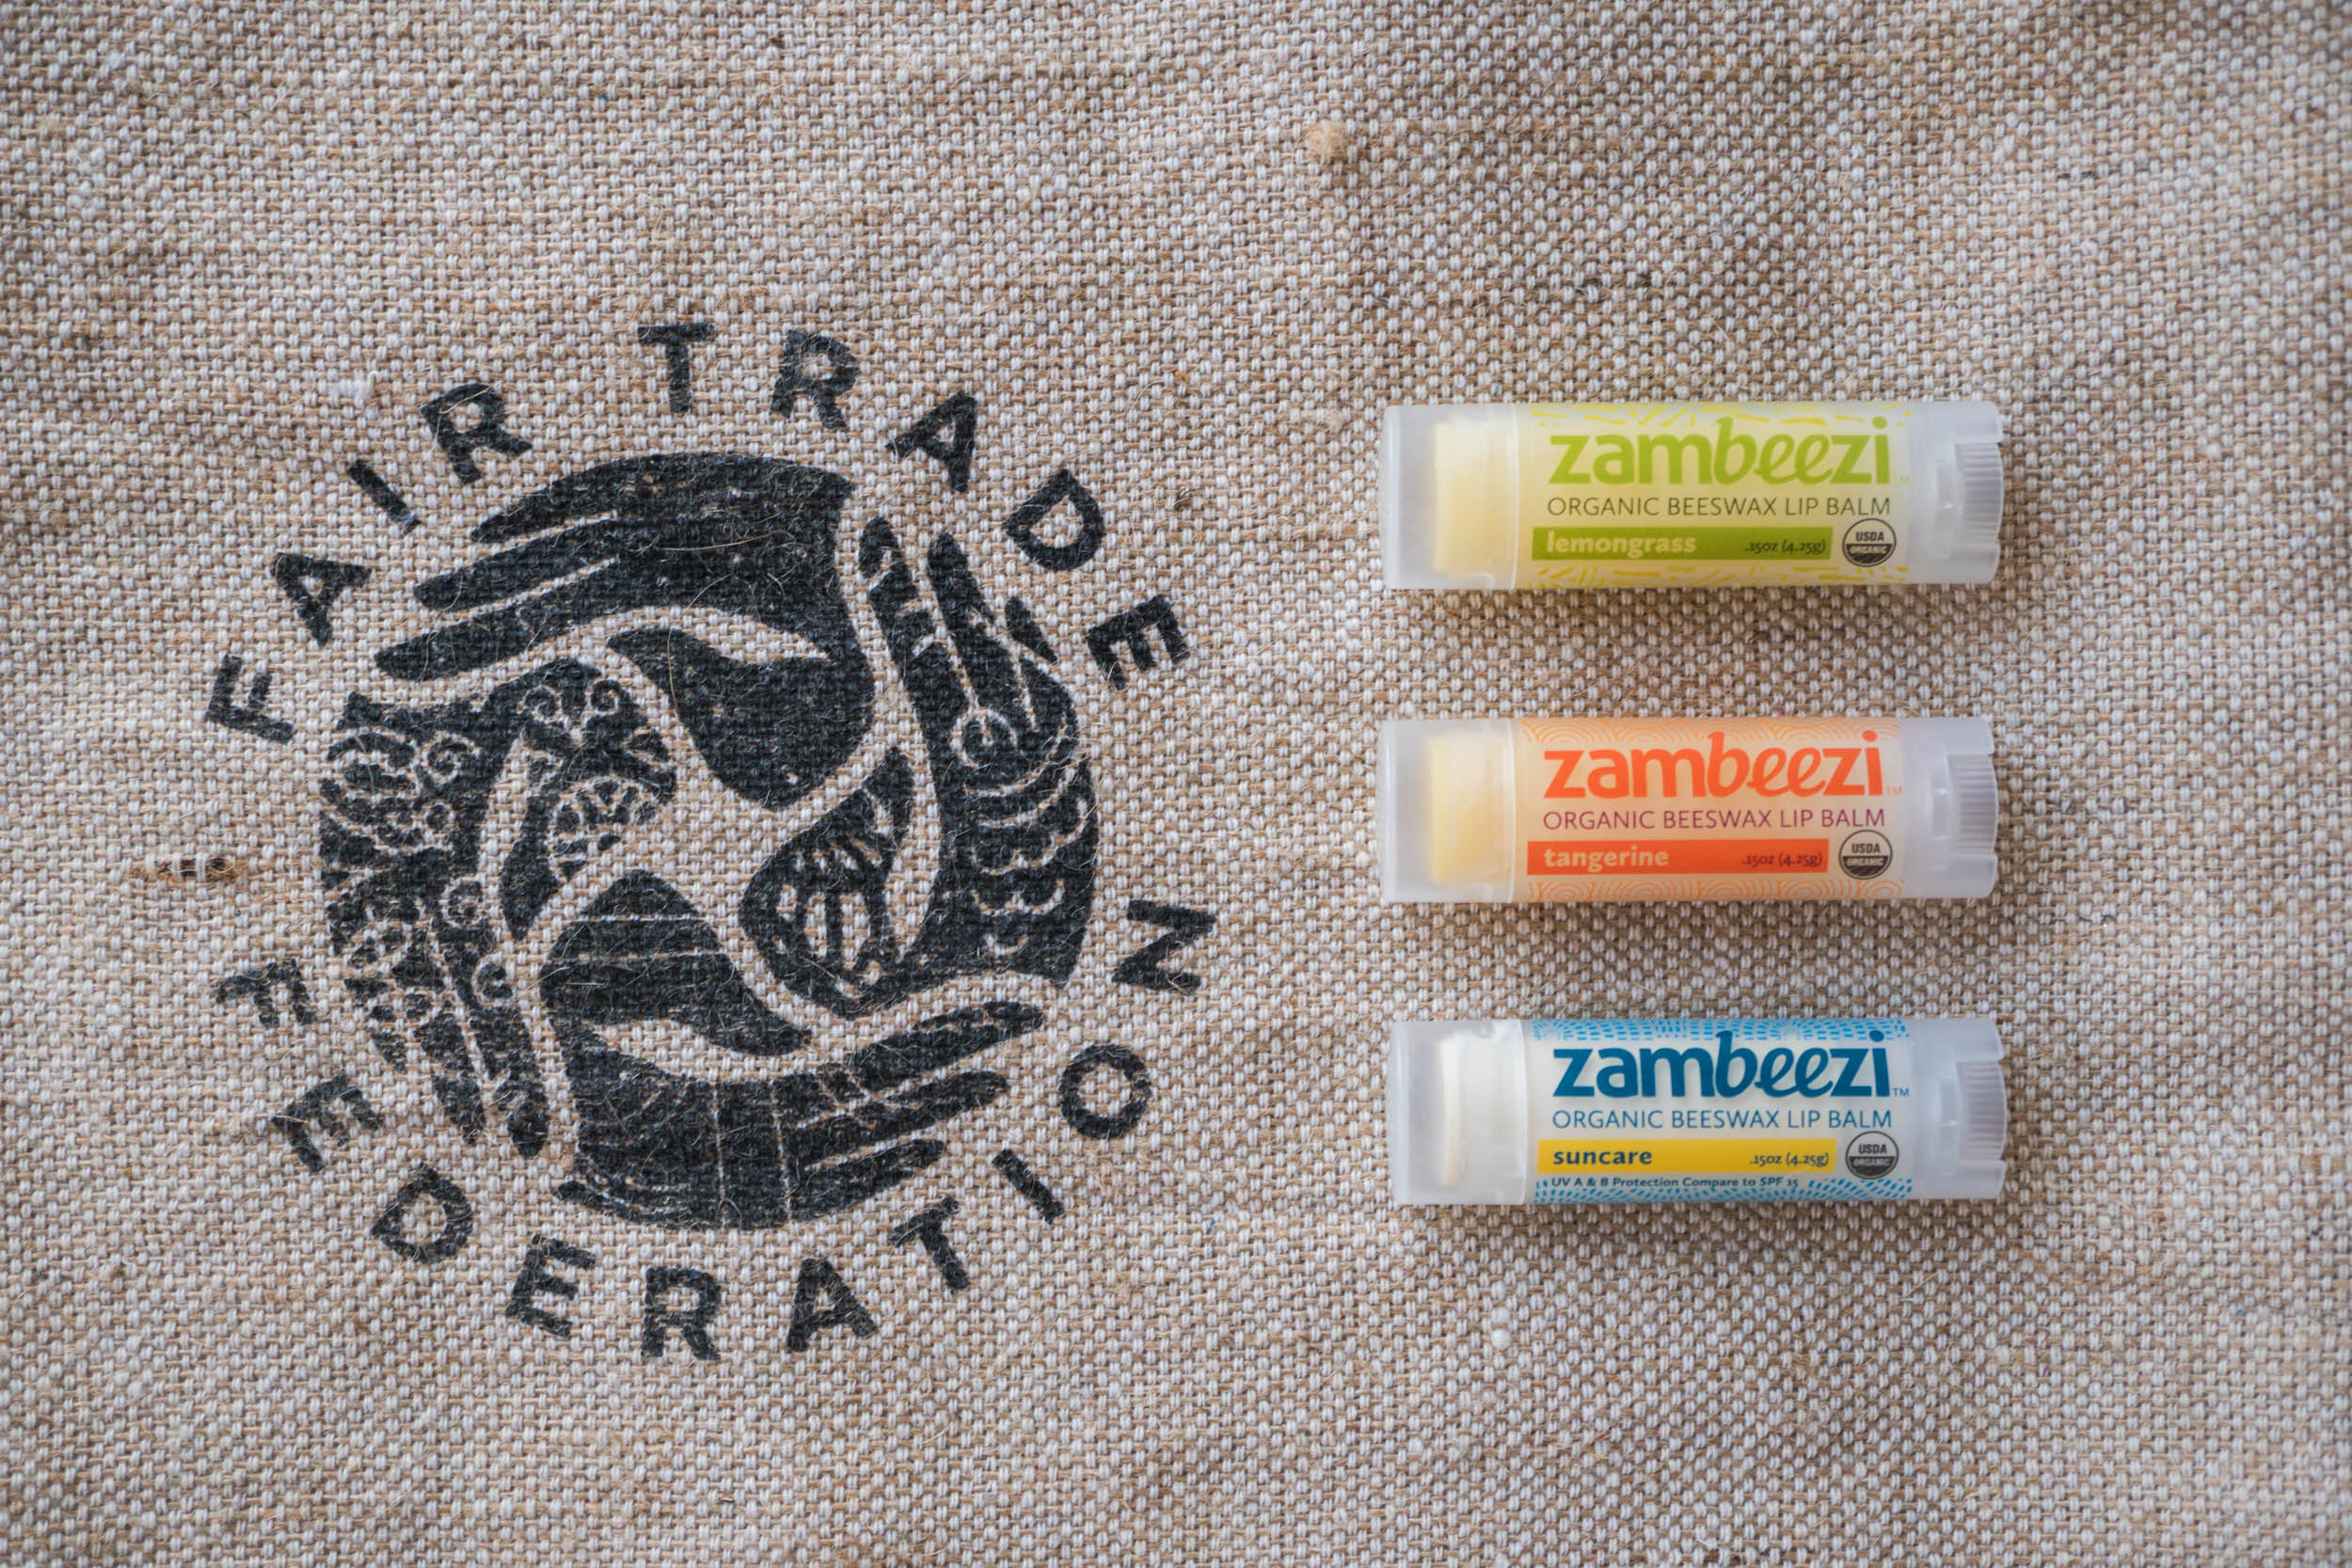 Fair Trade, Organic Beeswax lip balm crafted from the best ethically sourced ingredients.